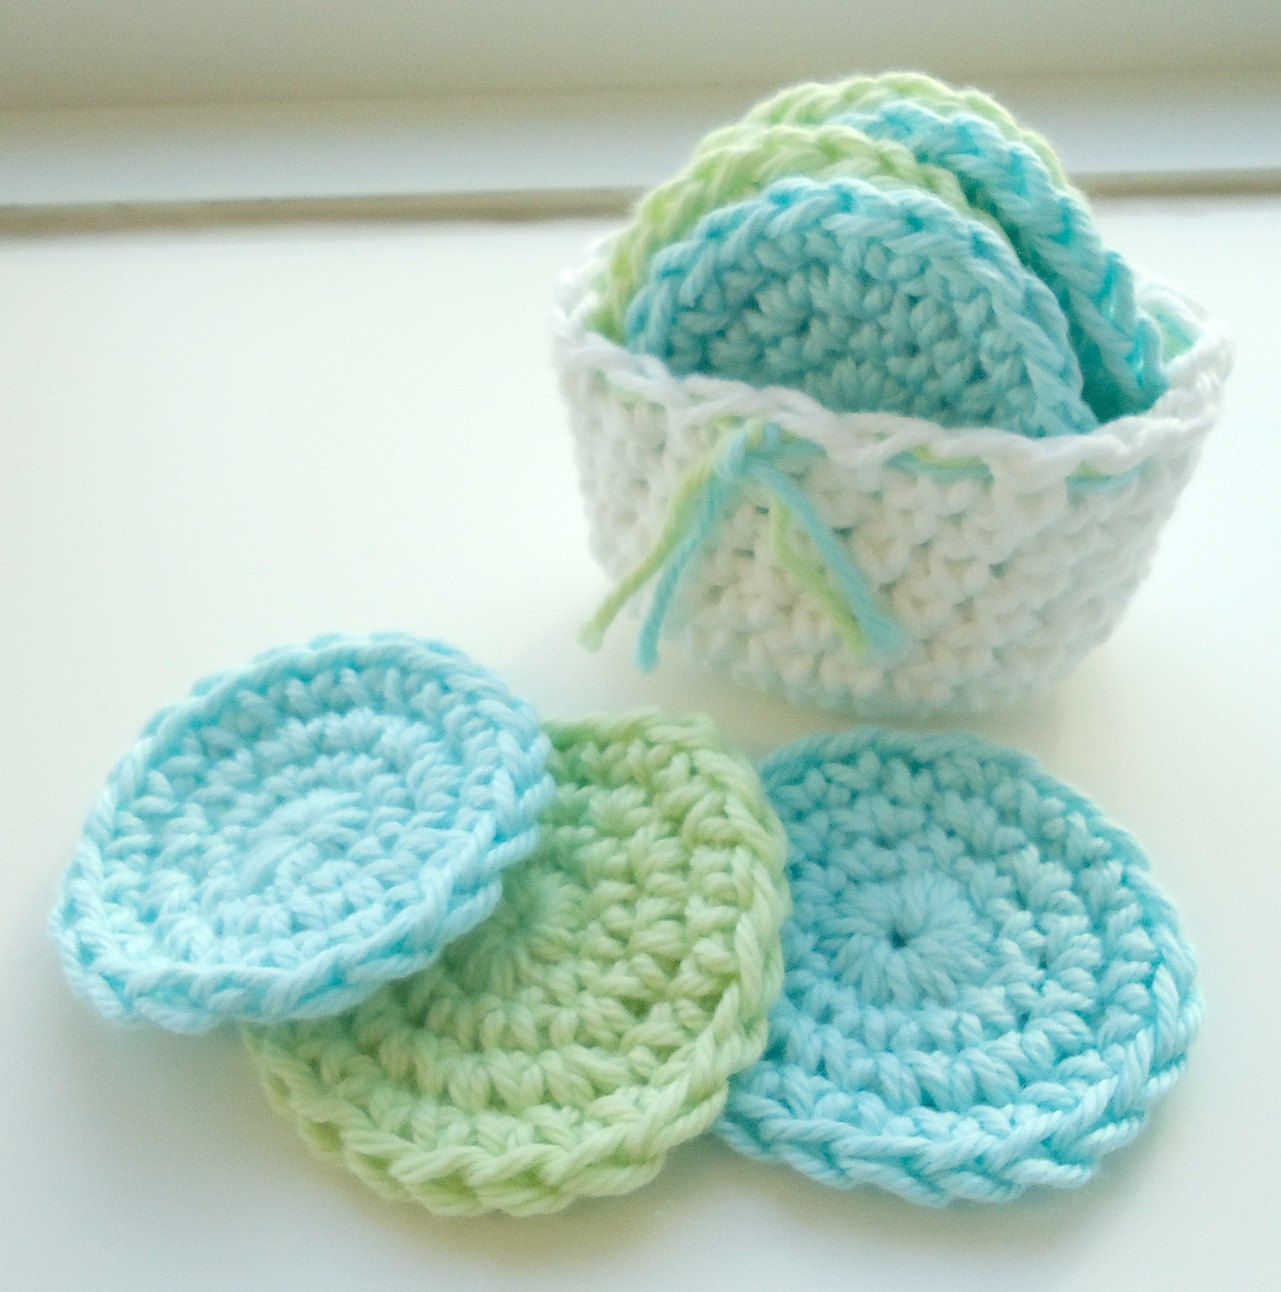 Crochet Scrubbies with Crochet Basket - Set of 7 - Aqua Blue, Soft ...